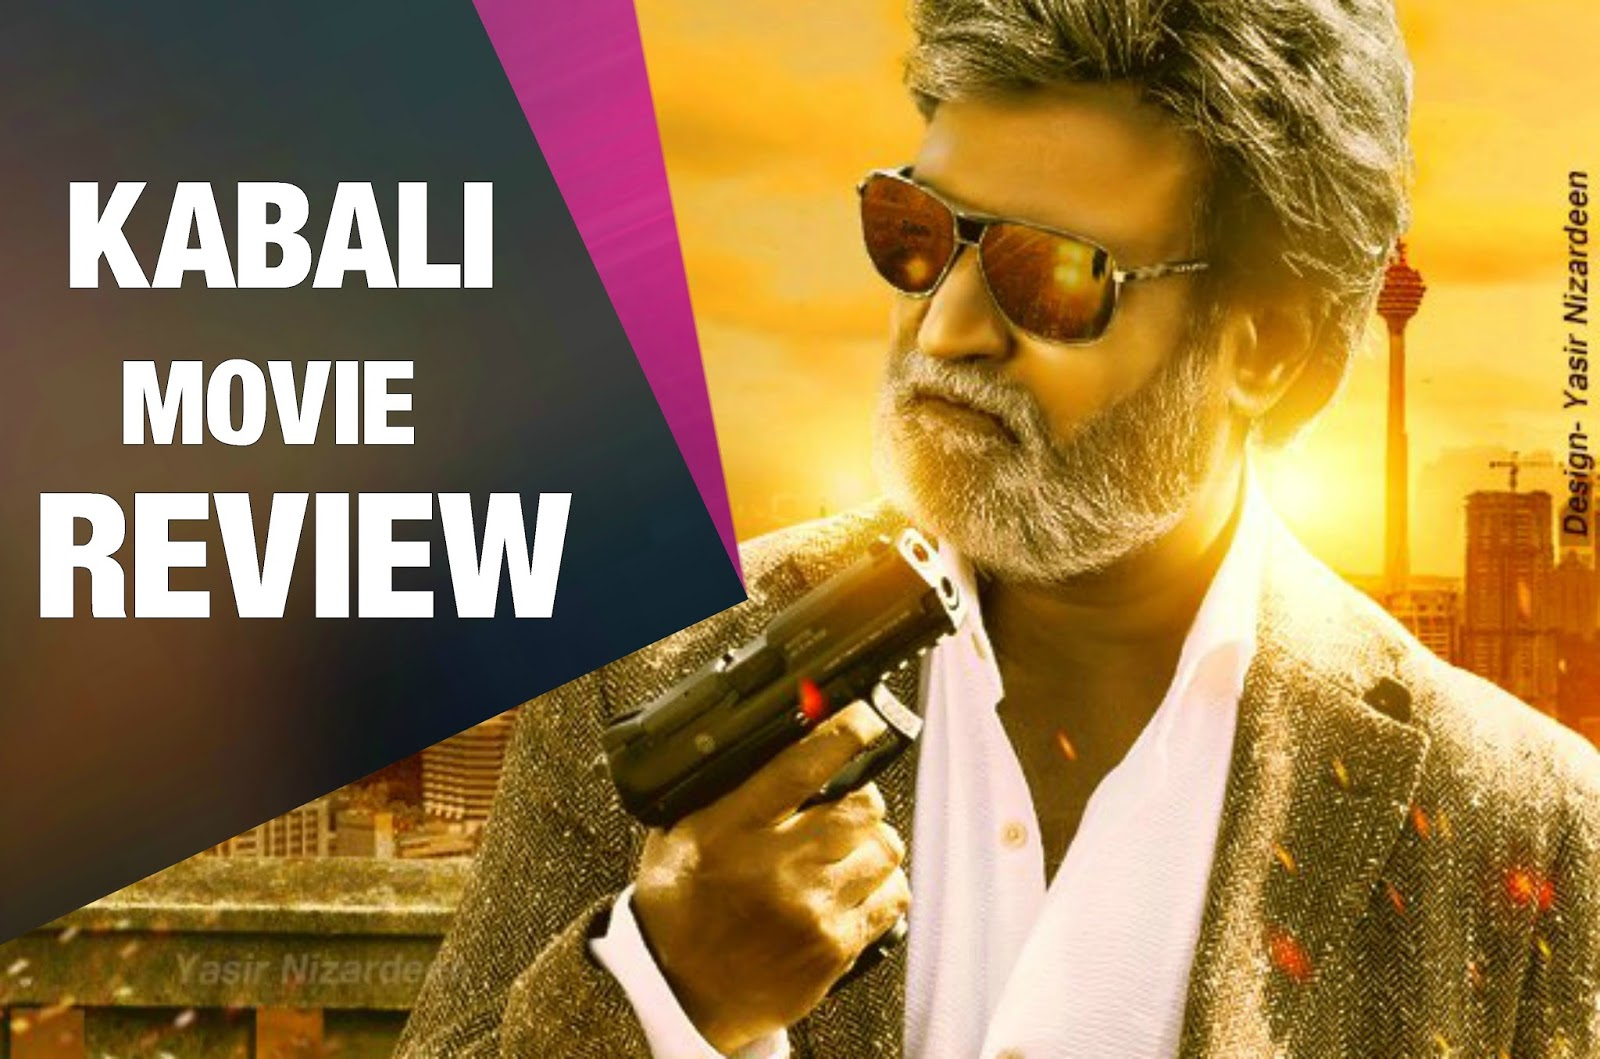 Kabali Movie review in Tamil